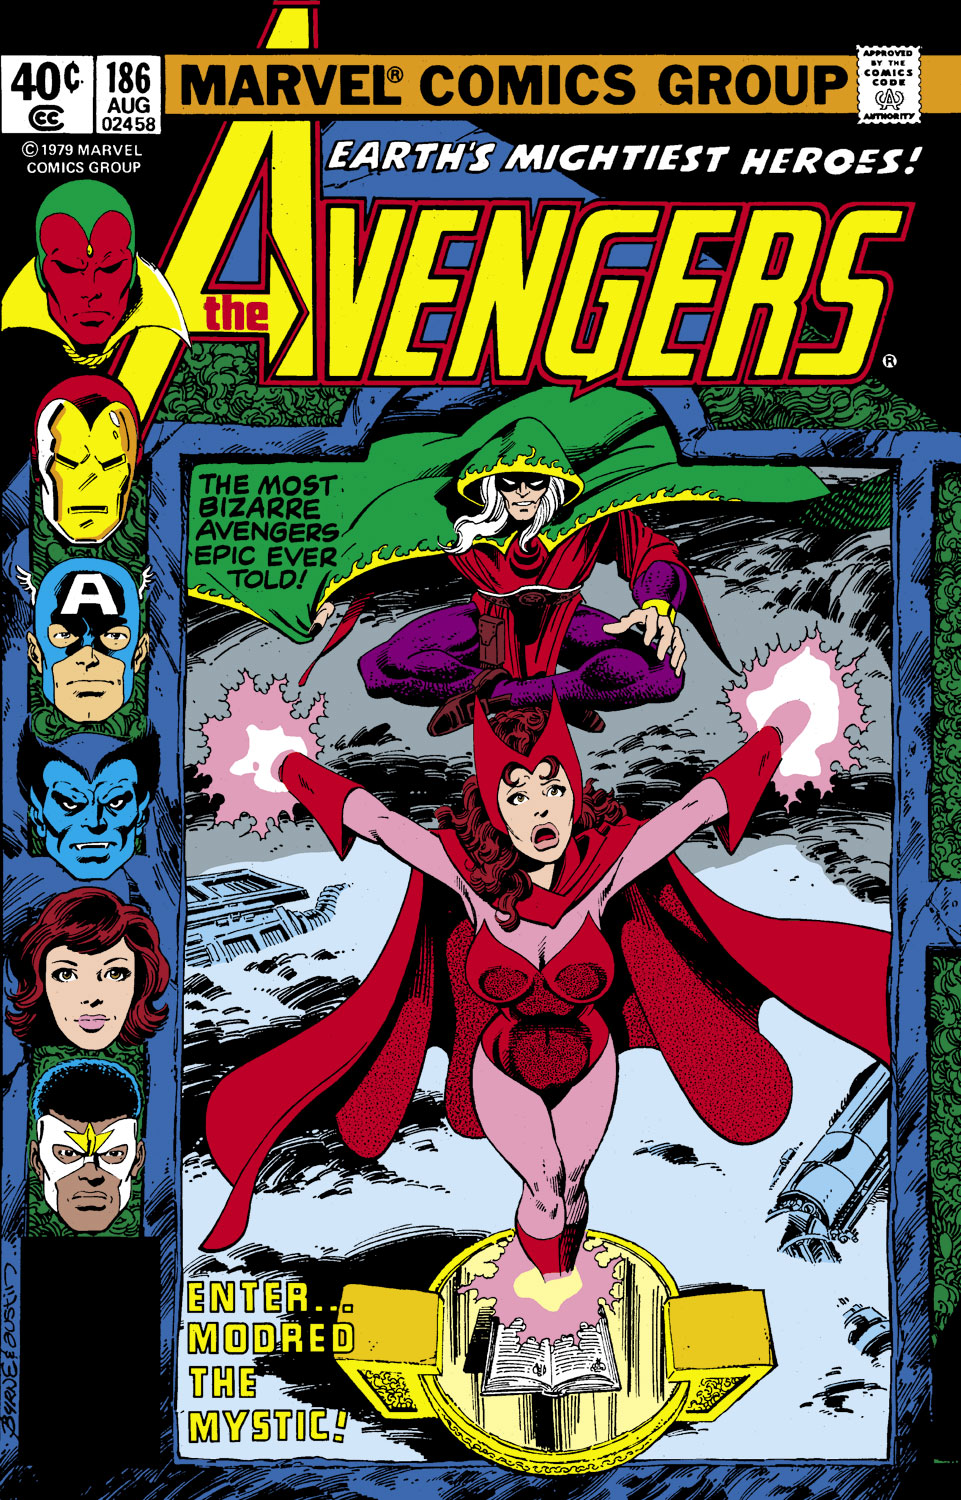 Avengers (1963) #186 | Comic Issues | Marvel